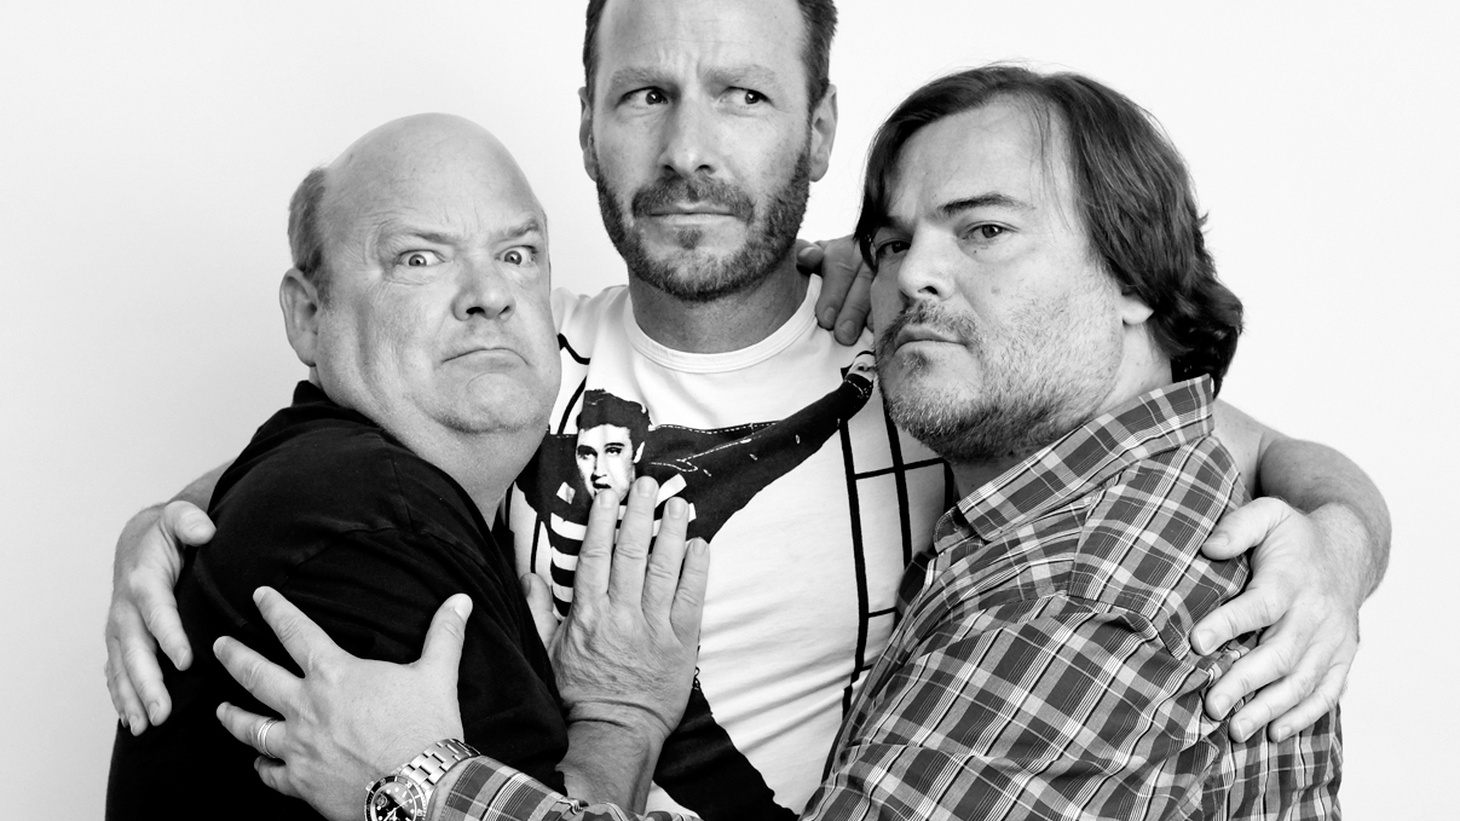 It's a Tenacious D takeover!